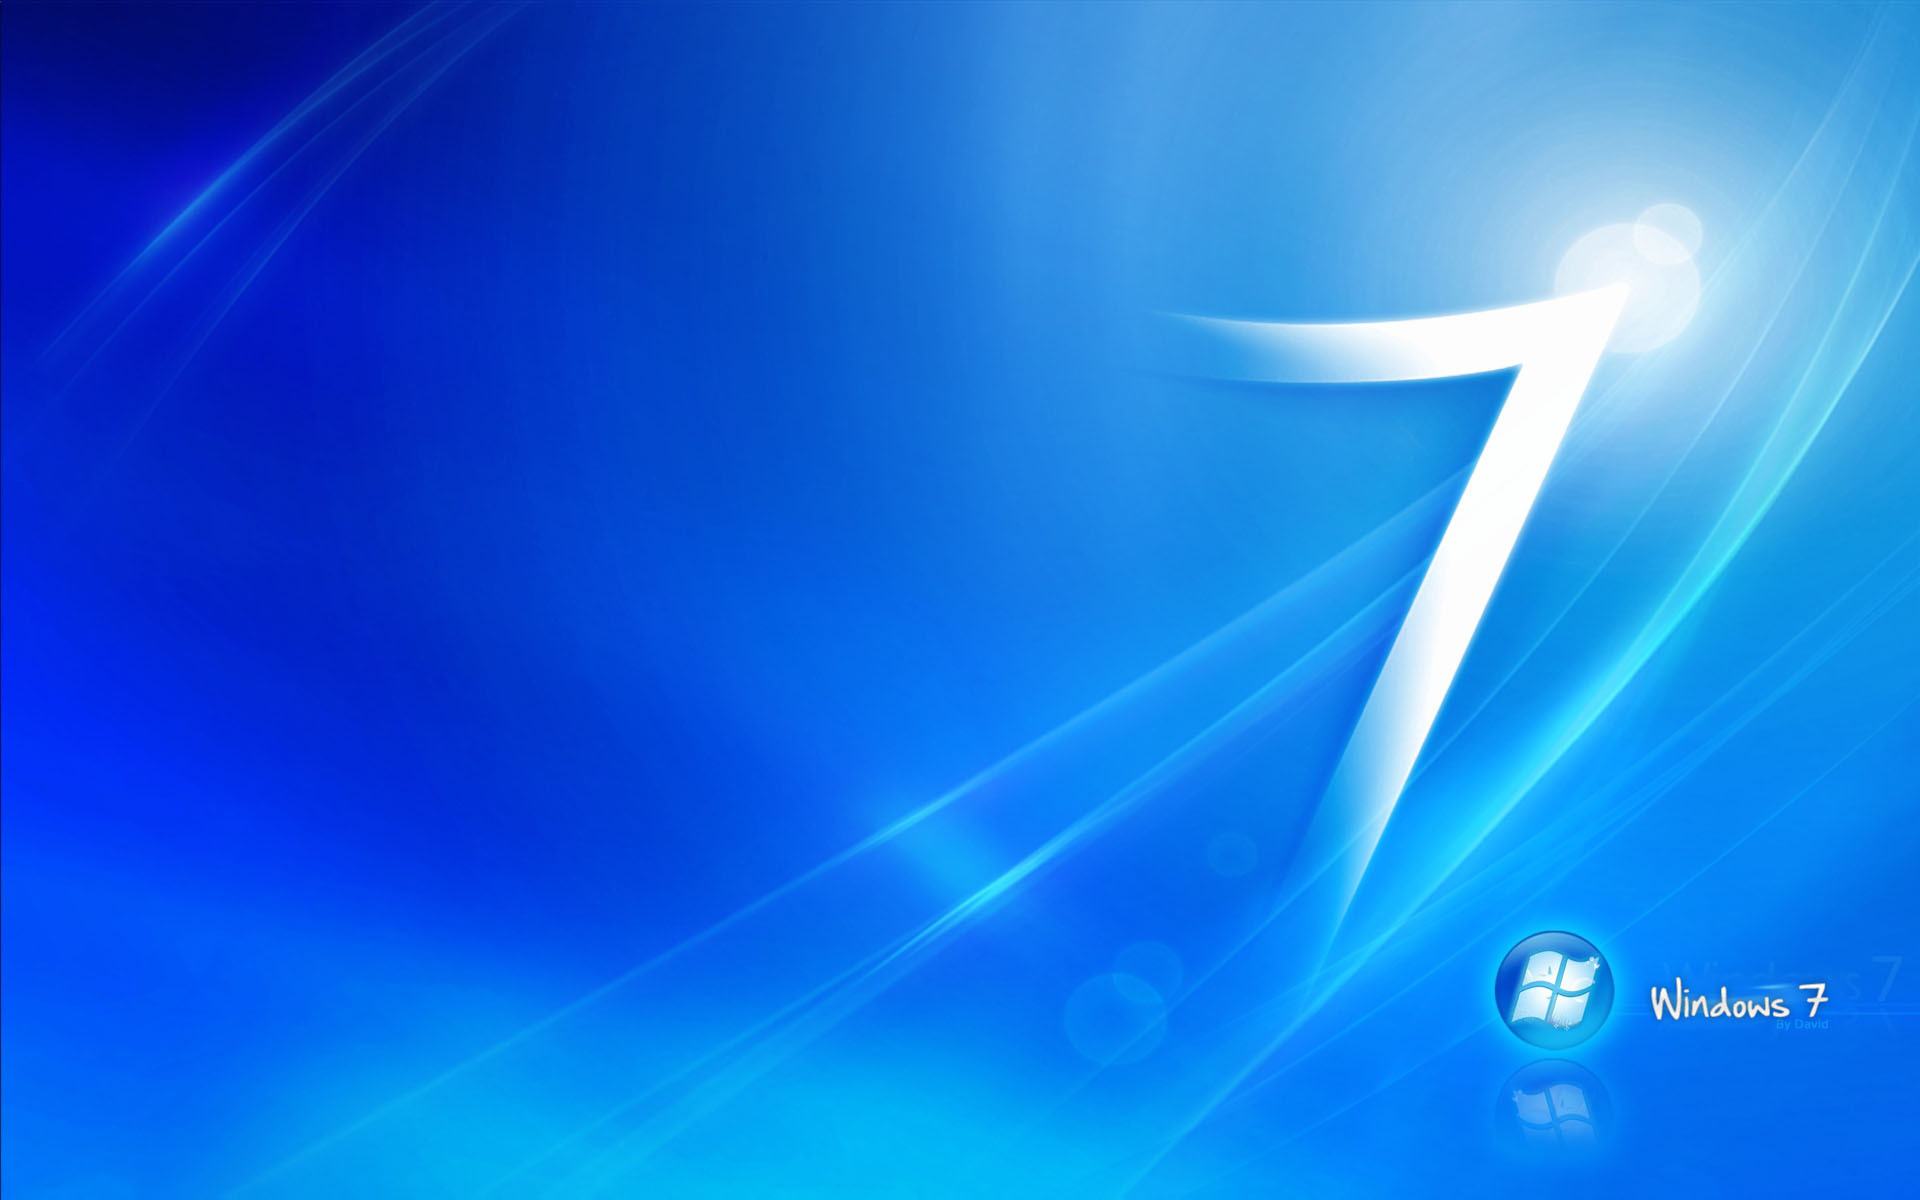 windows 7 blue wallpaper background images wallpapers